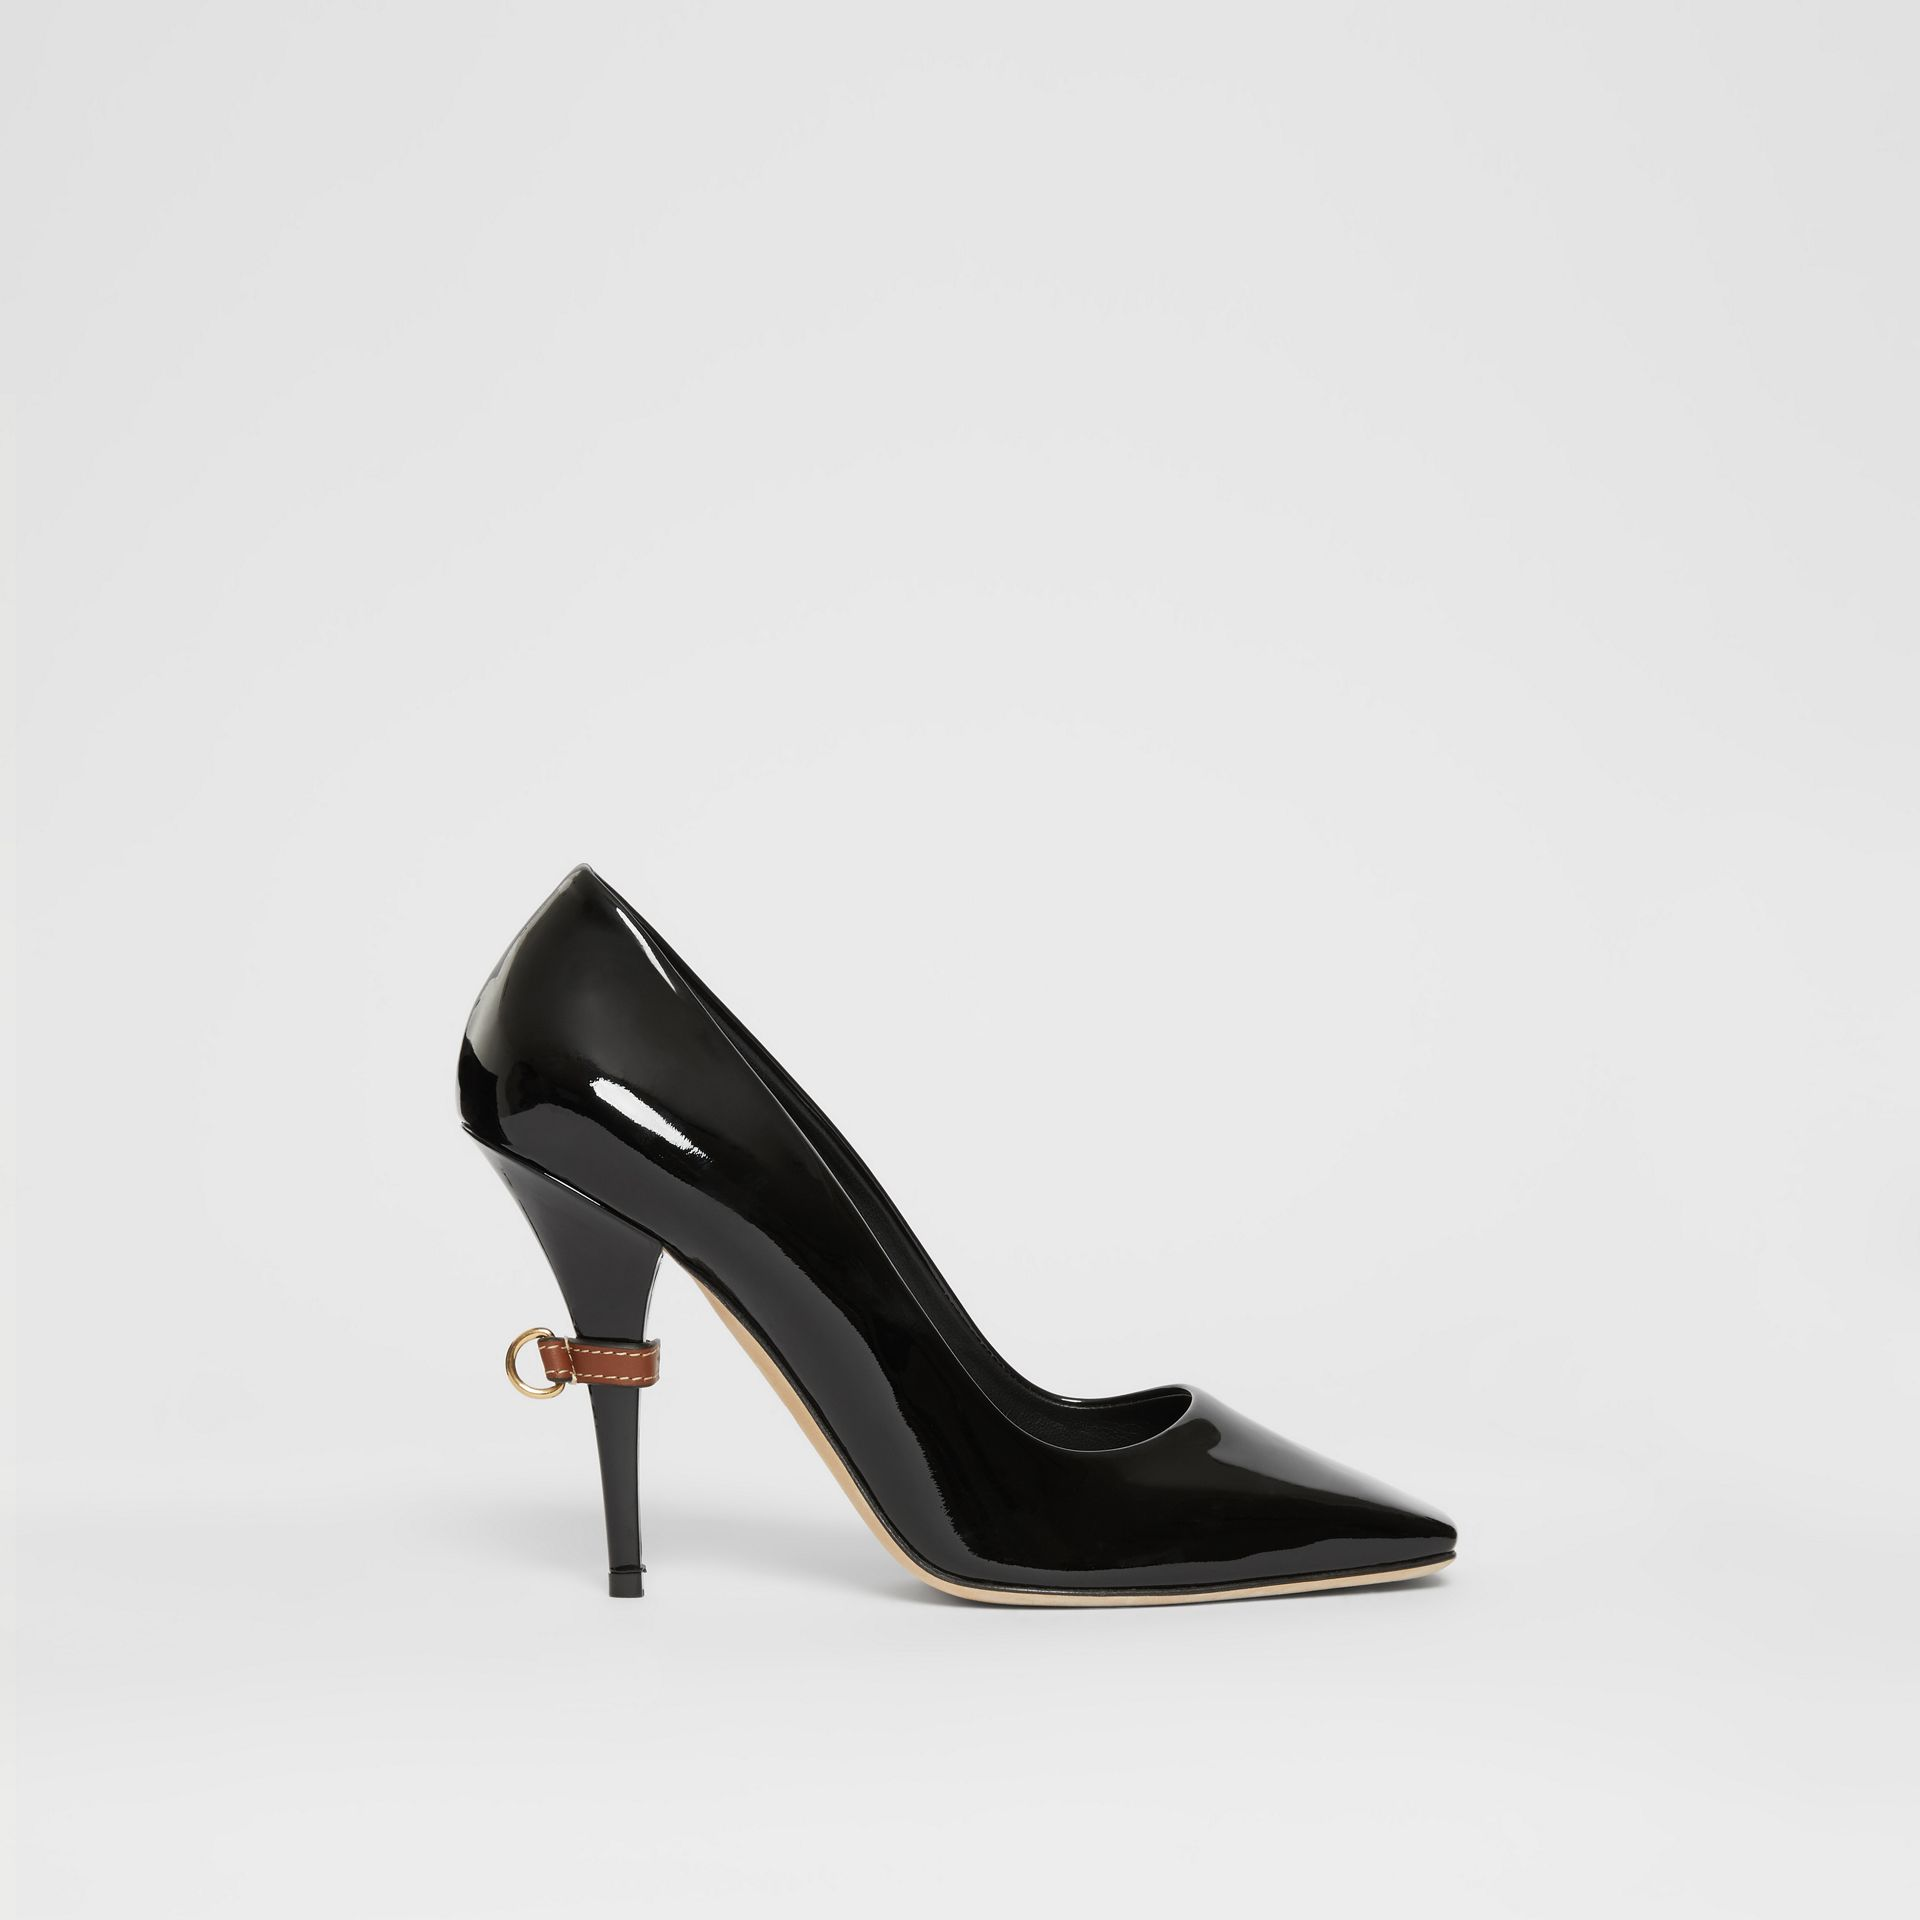 D-ring Detail Patent Leather Square-toe Pumps in Black - Women | Burberry - gallery image 5